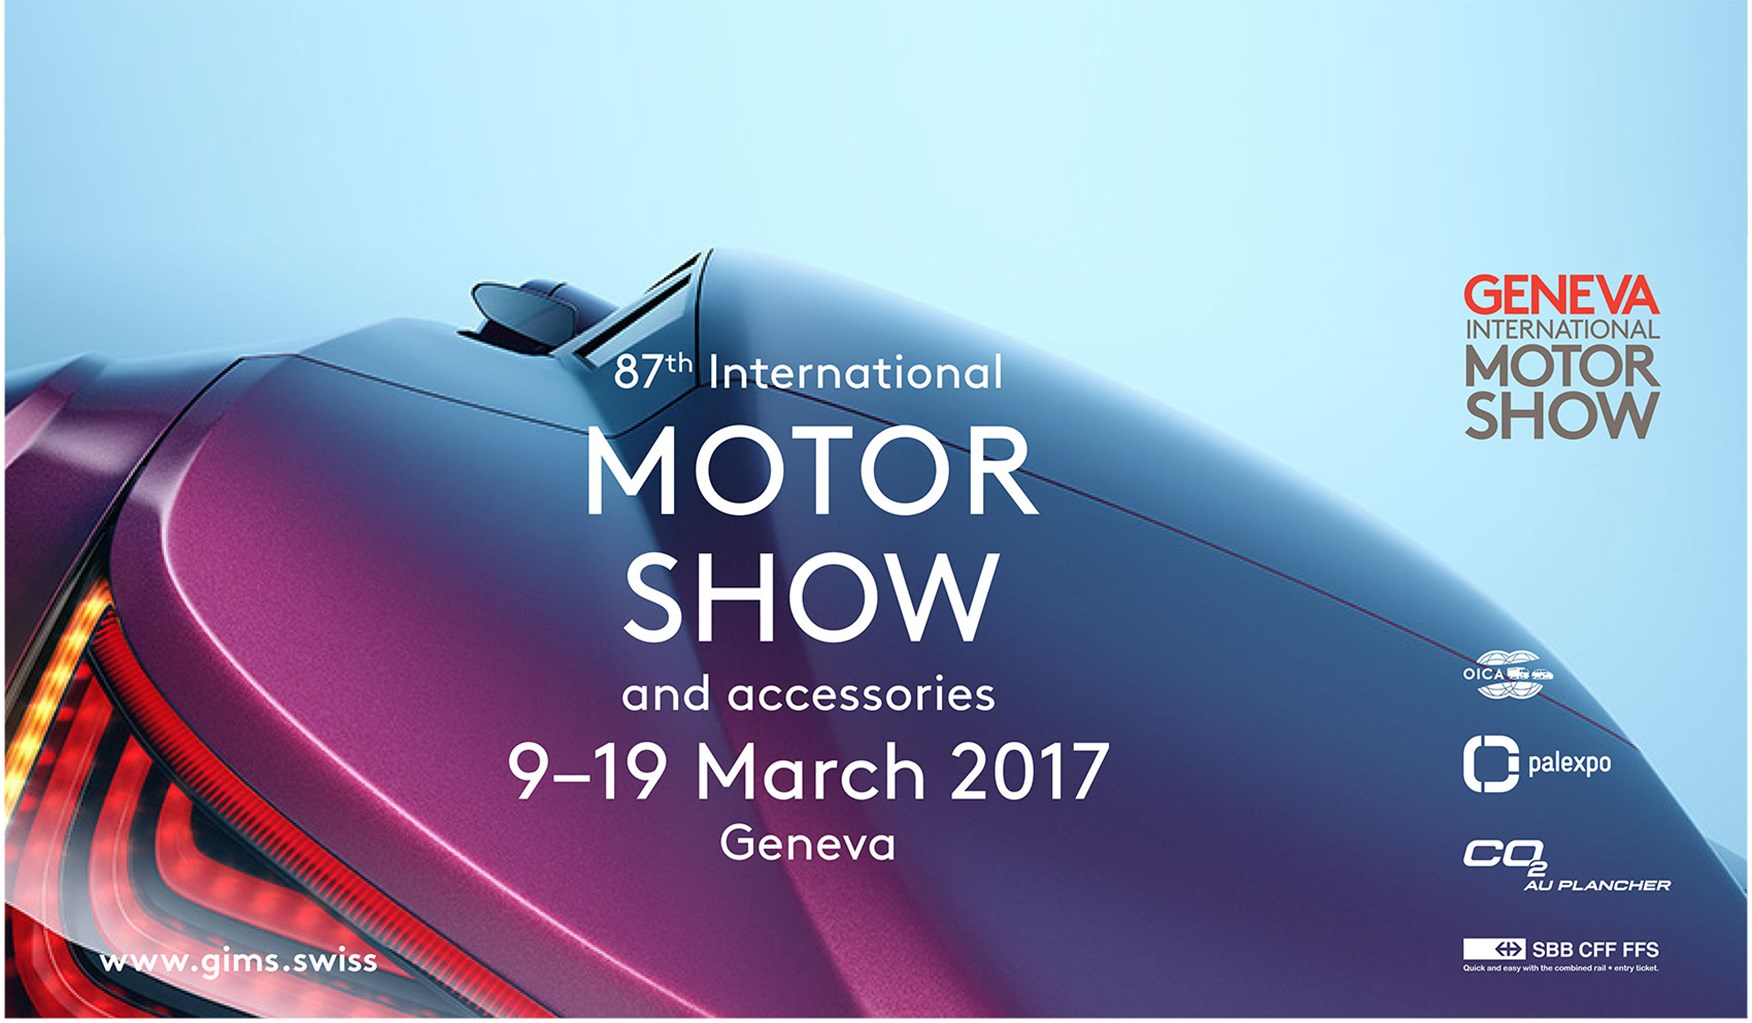 Geneva Motor Show A Guide To Tickets Prices How To Visit By Car